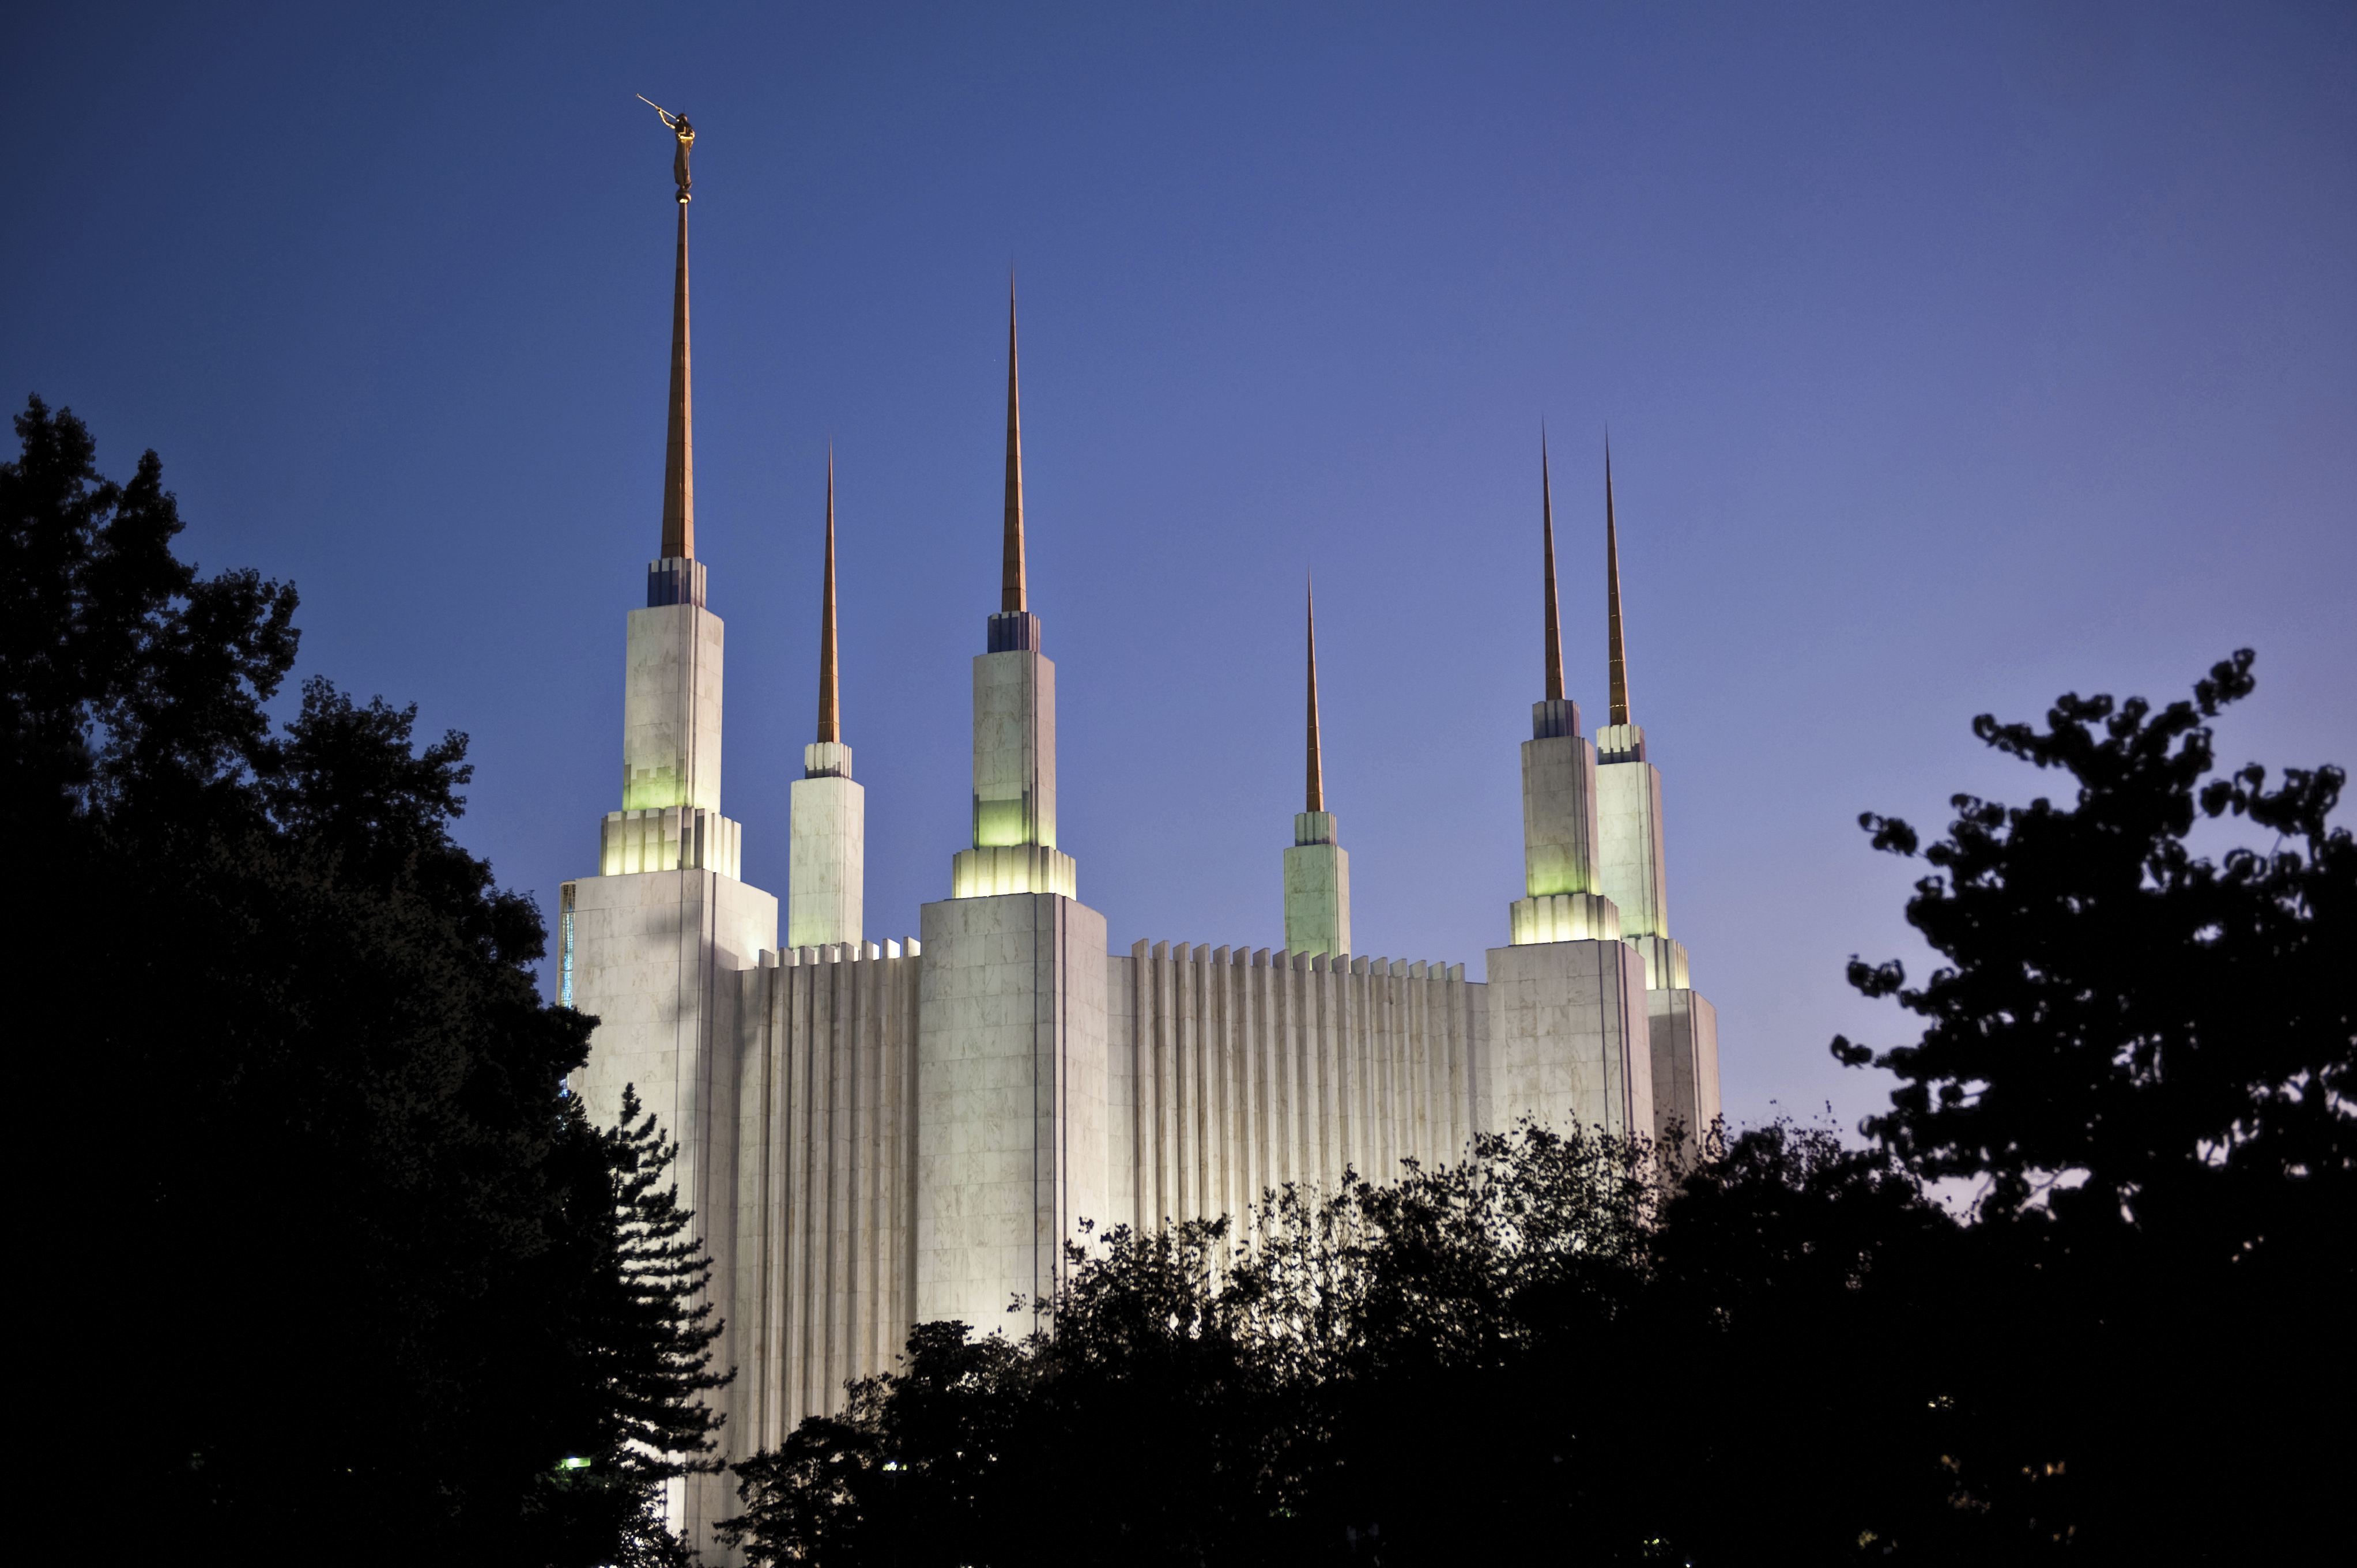 The Washington D.C. Temple in the evening, with scenery.